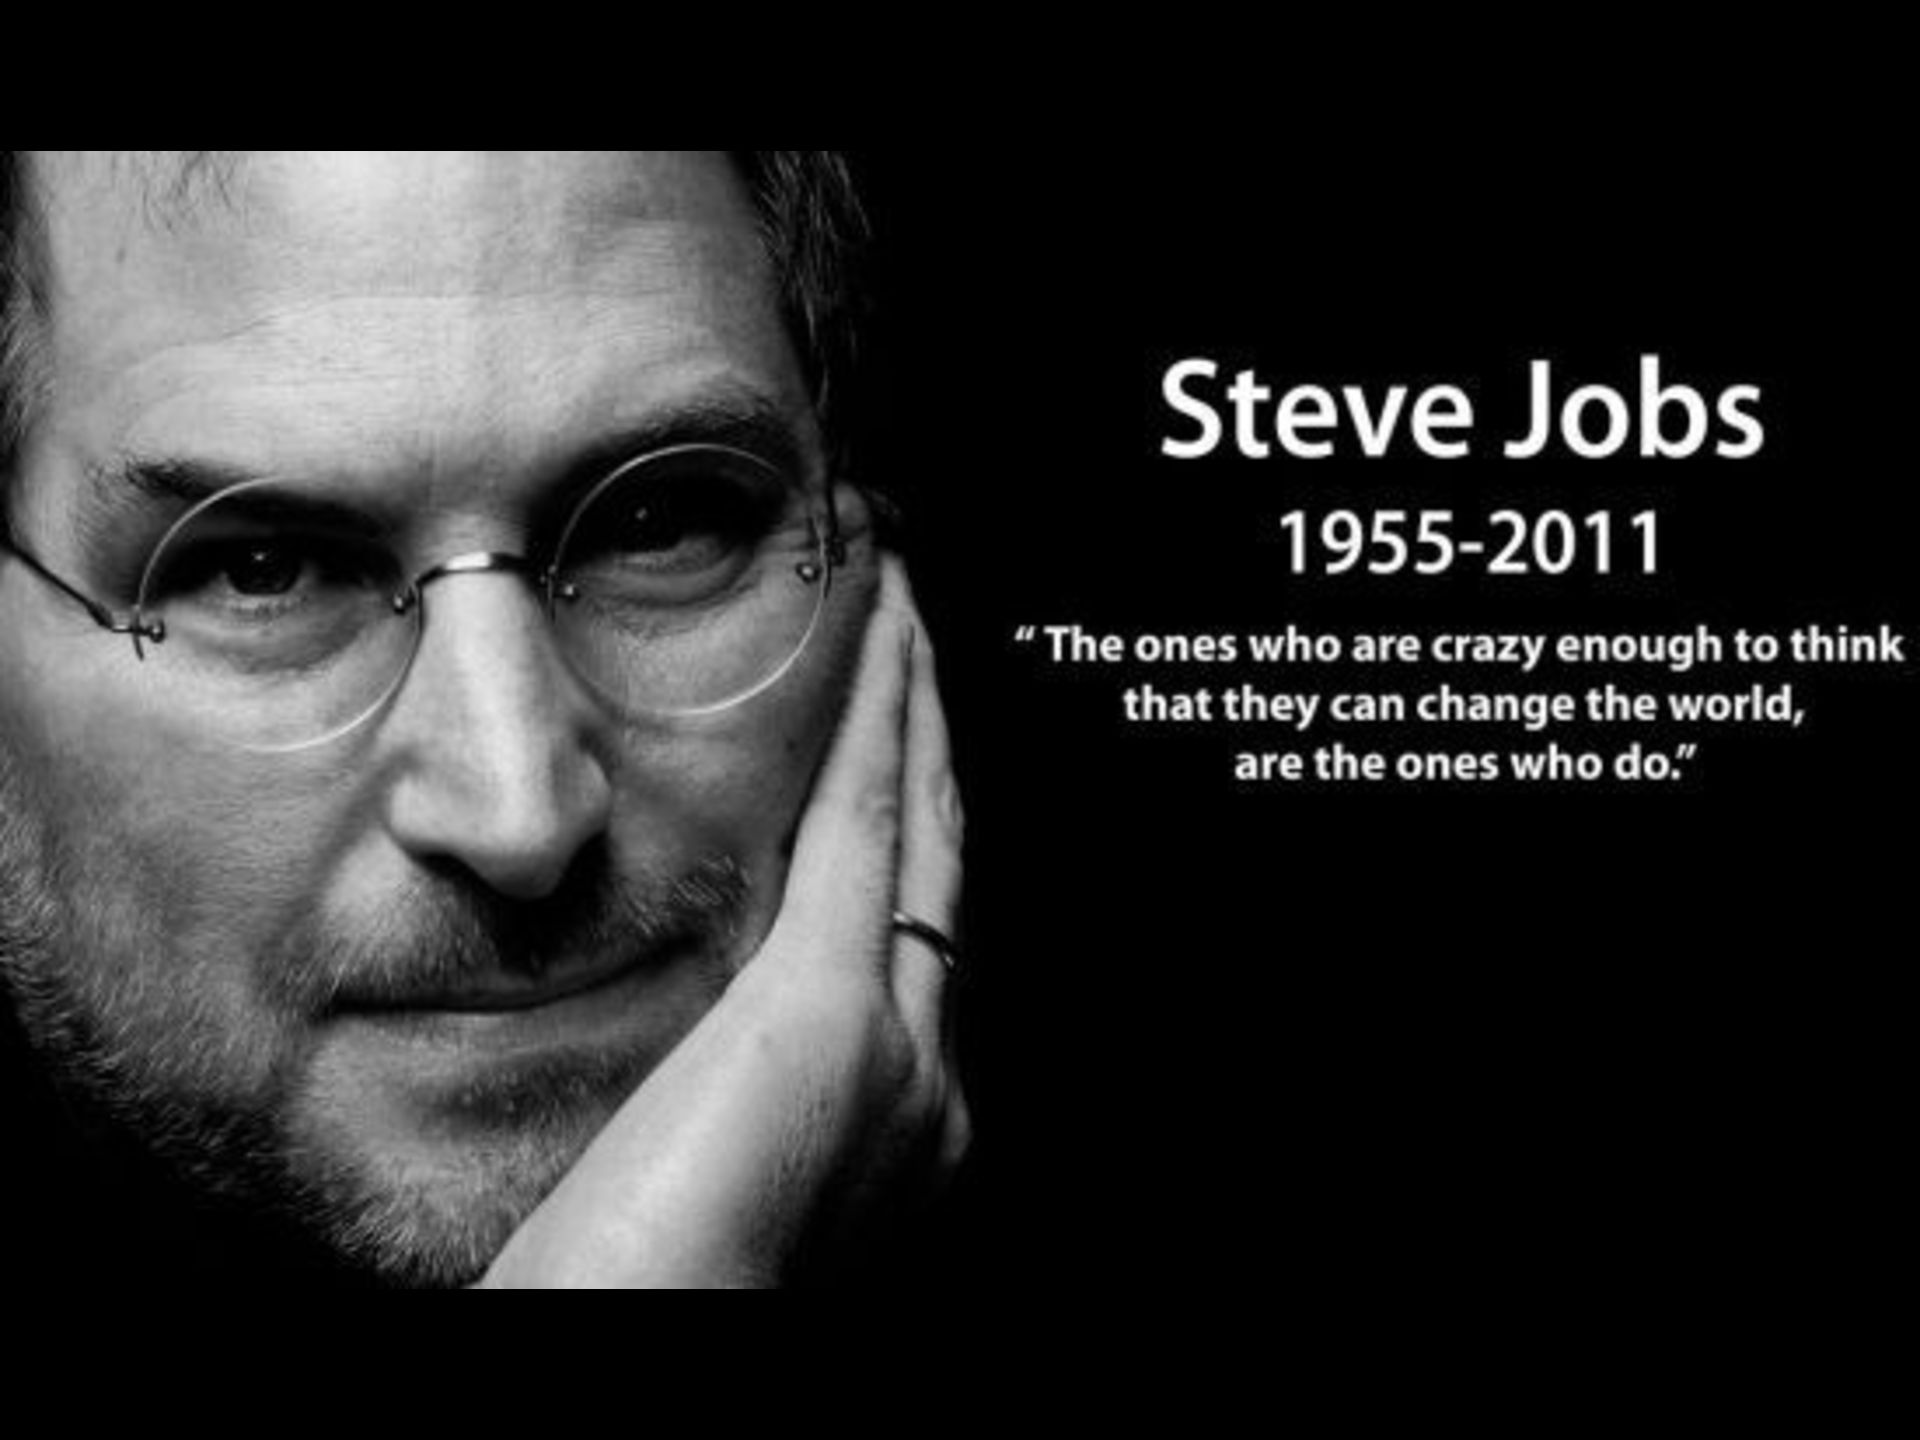 Steve Jobs Quotes Change The World Wallpaper X PIC MCH011911